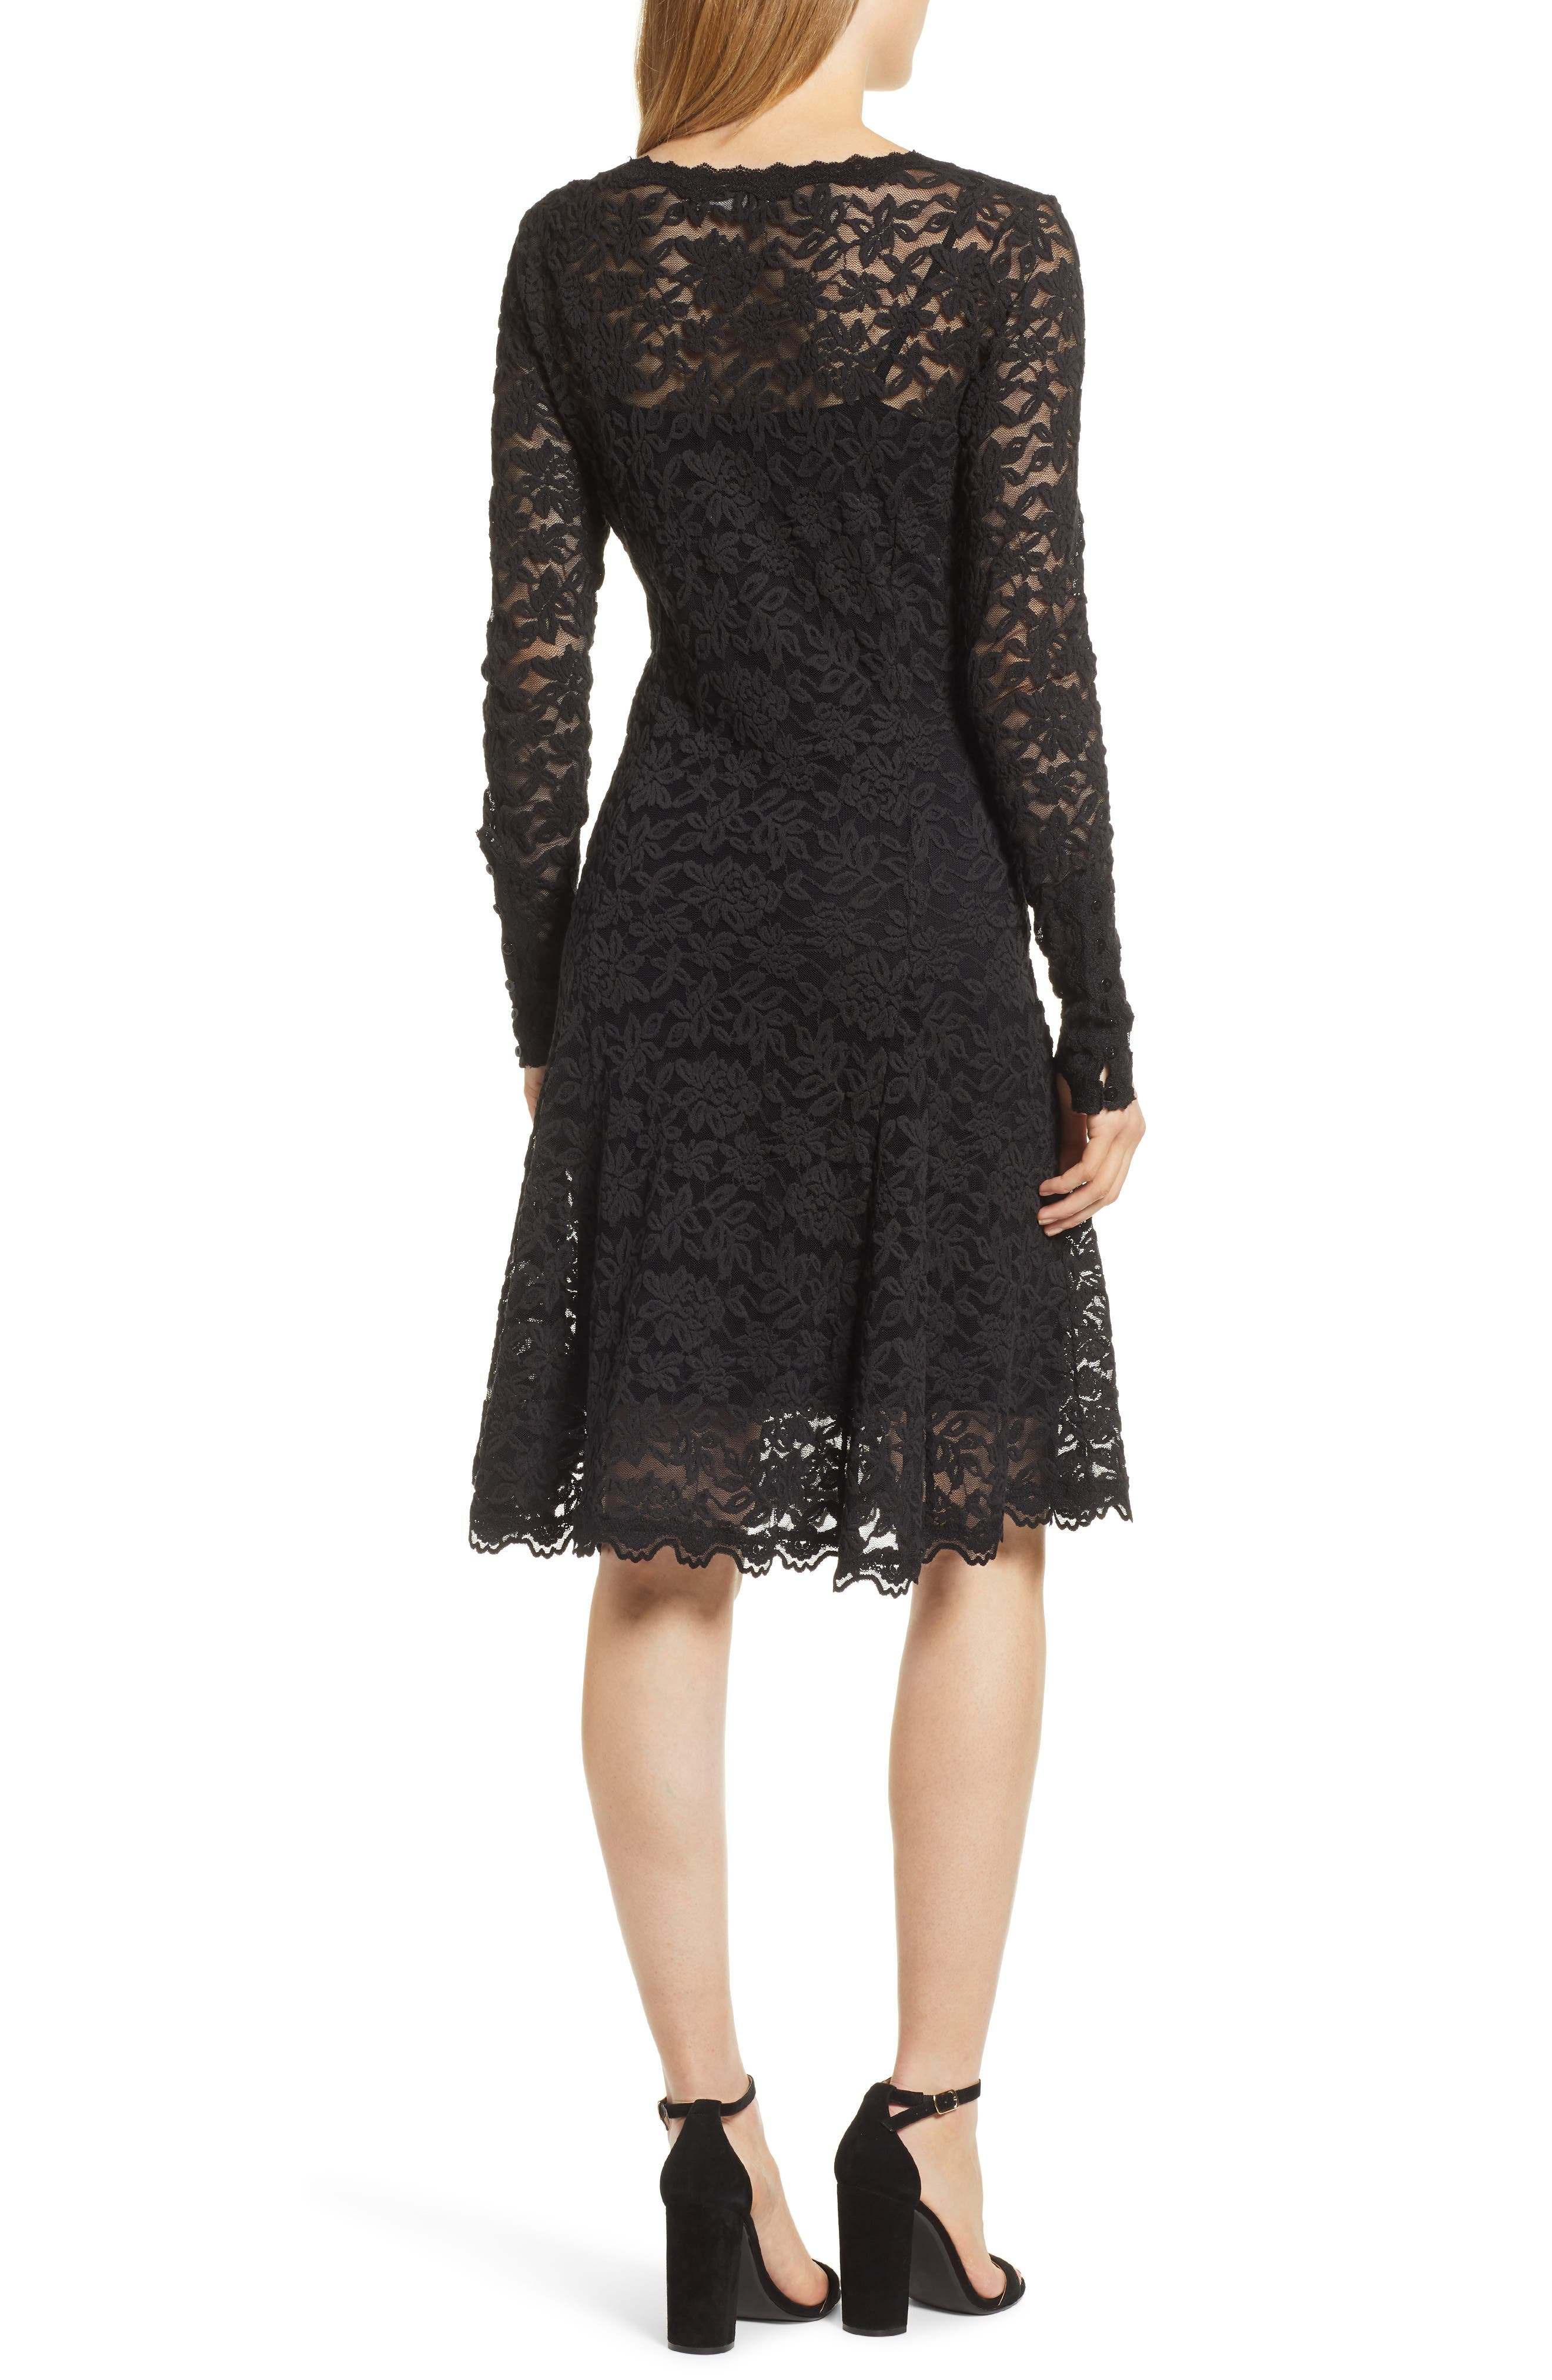 ROSEMUNDE, Delicia Fit & Flare Lace Dress, Alternate thumbnail 2, color, BLACK